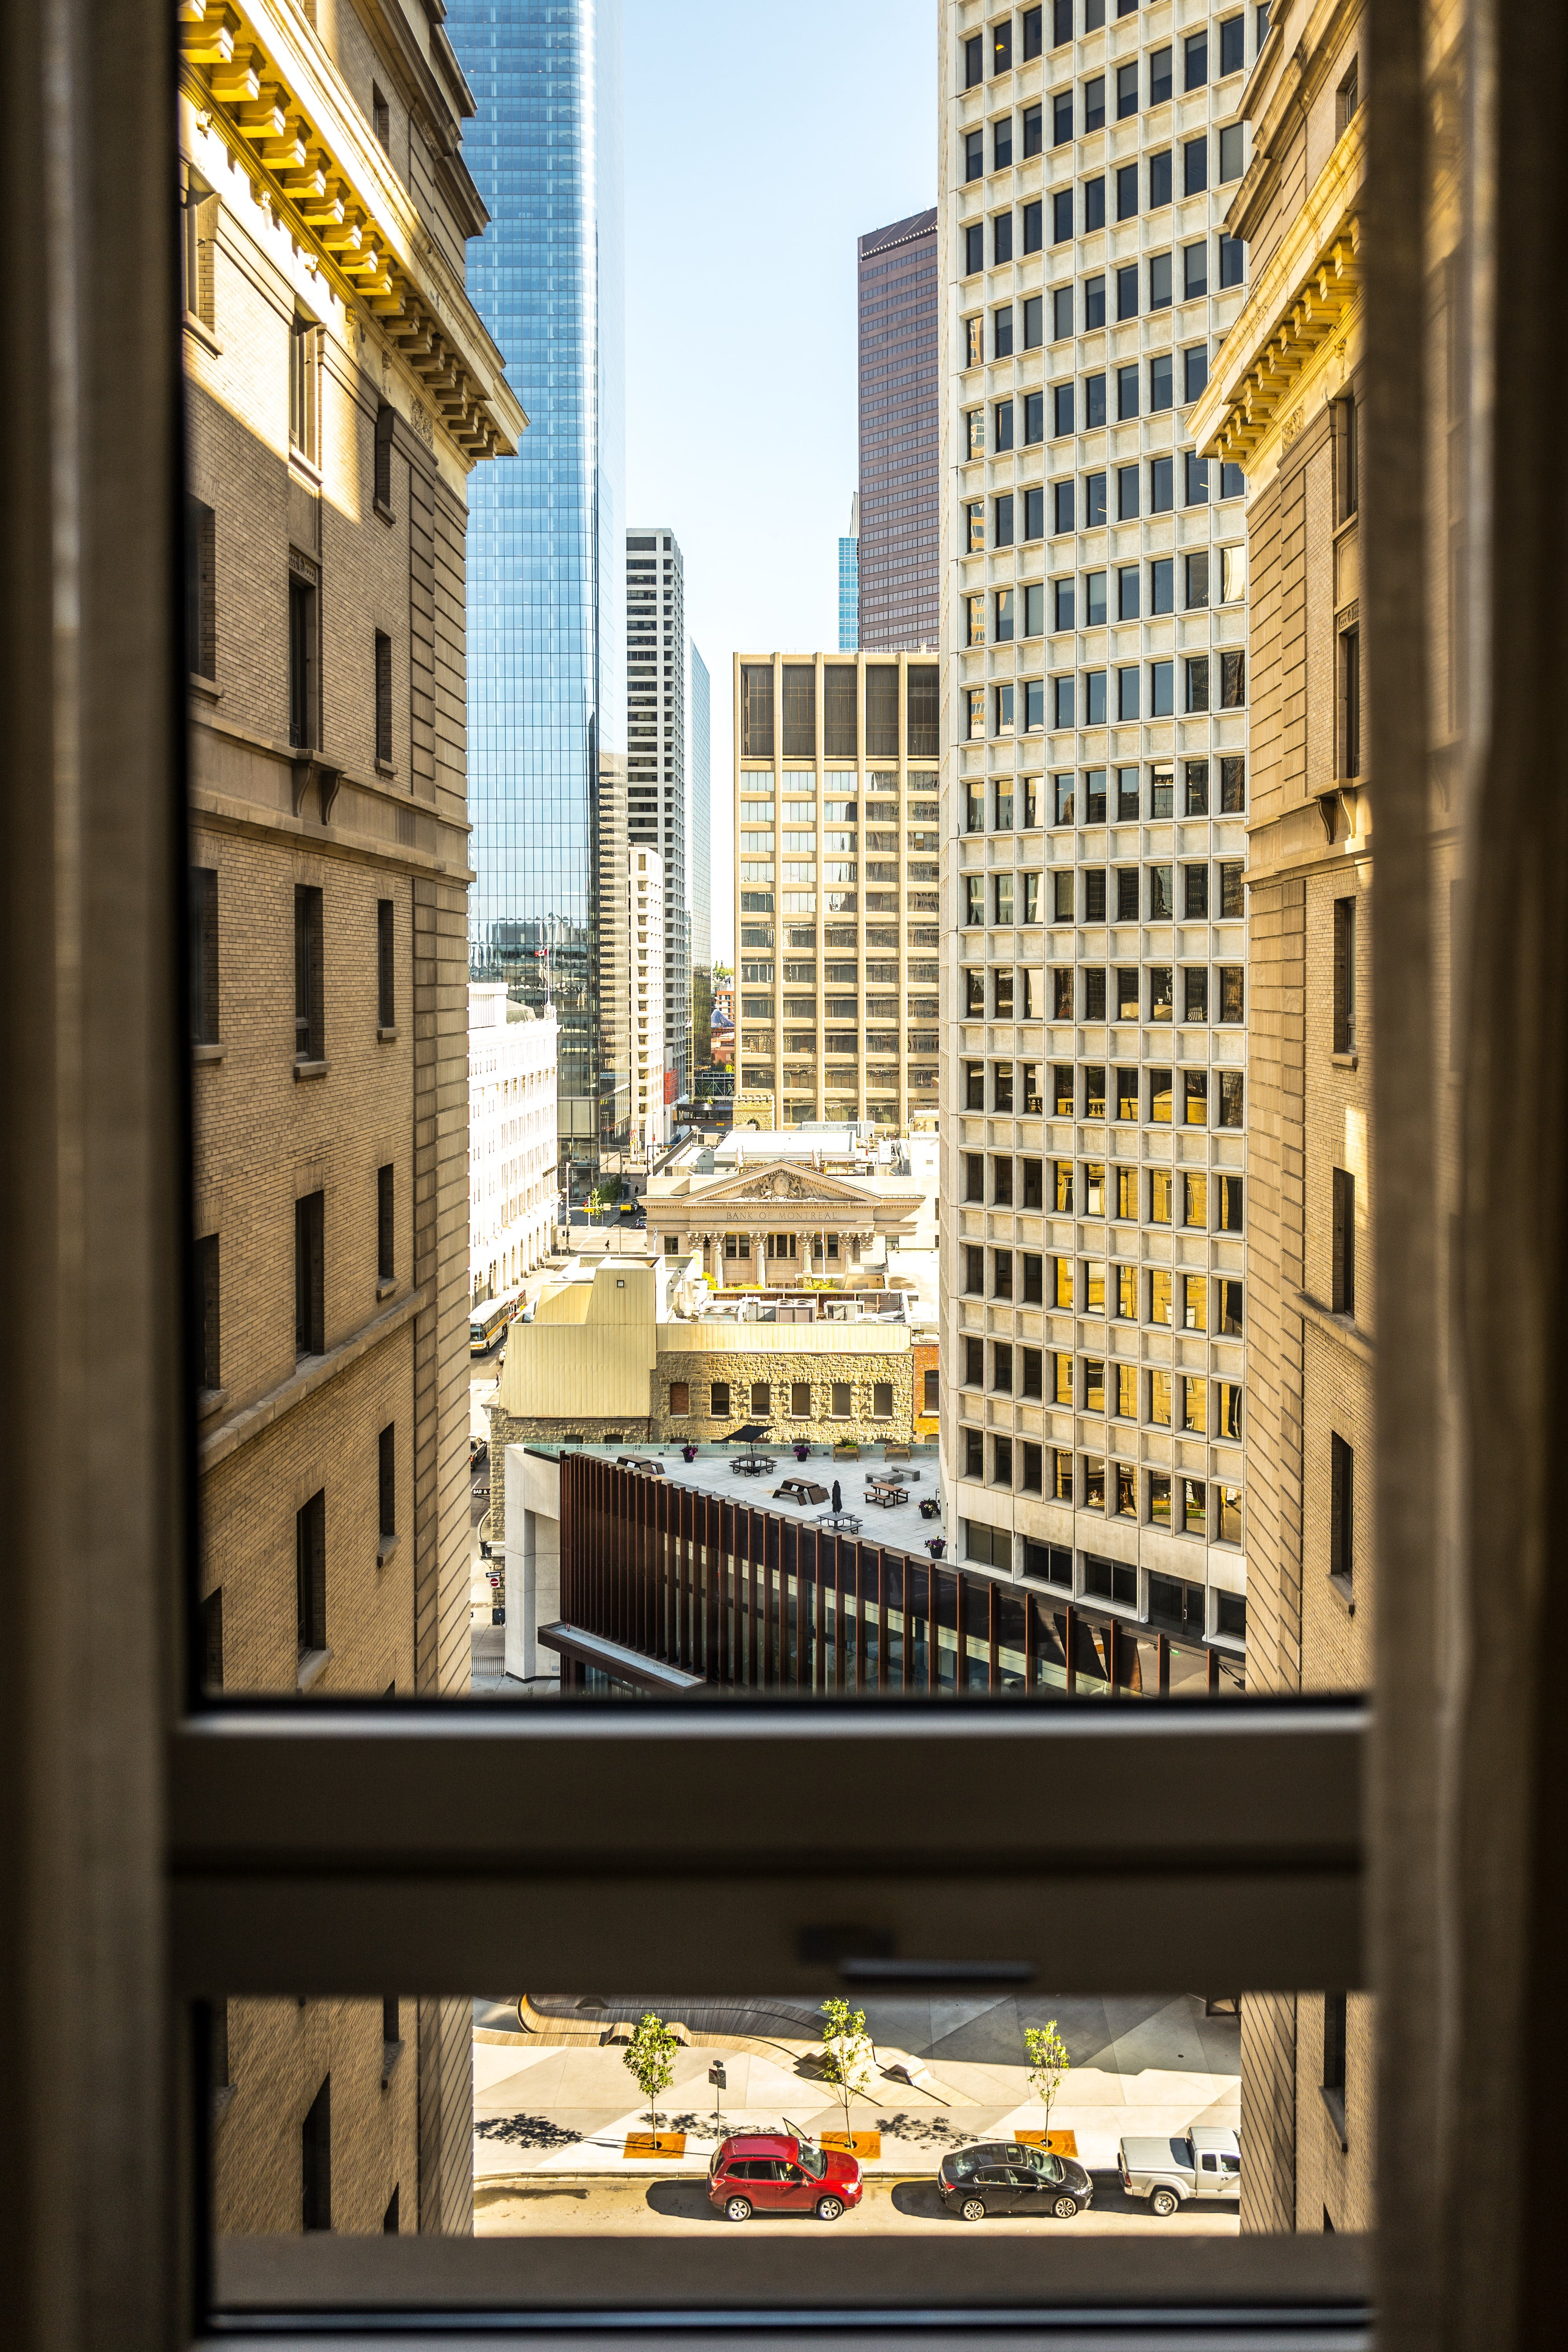 View of Buildings from a Window